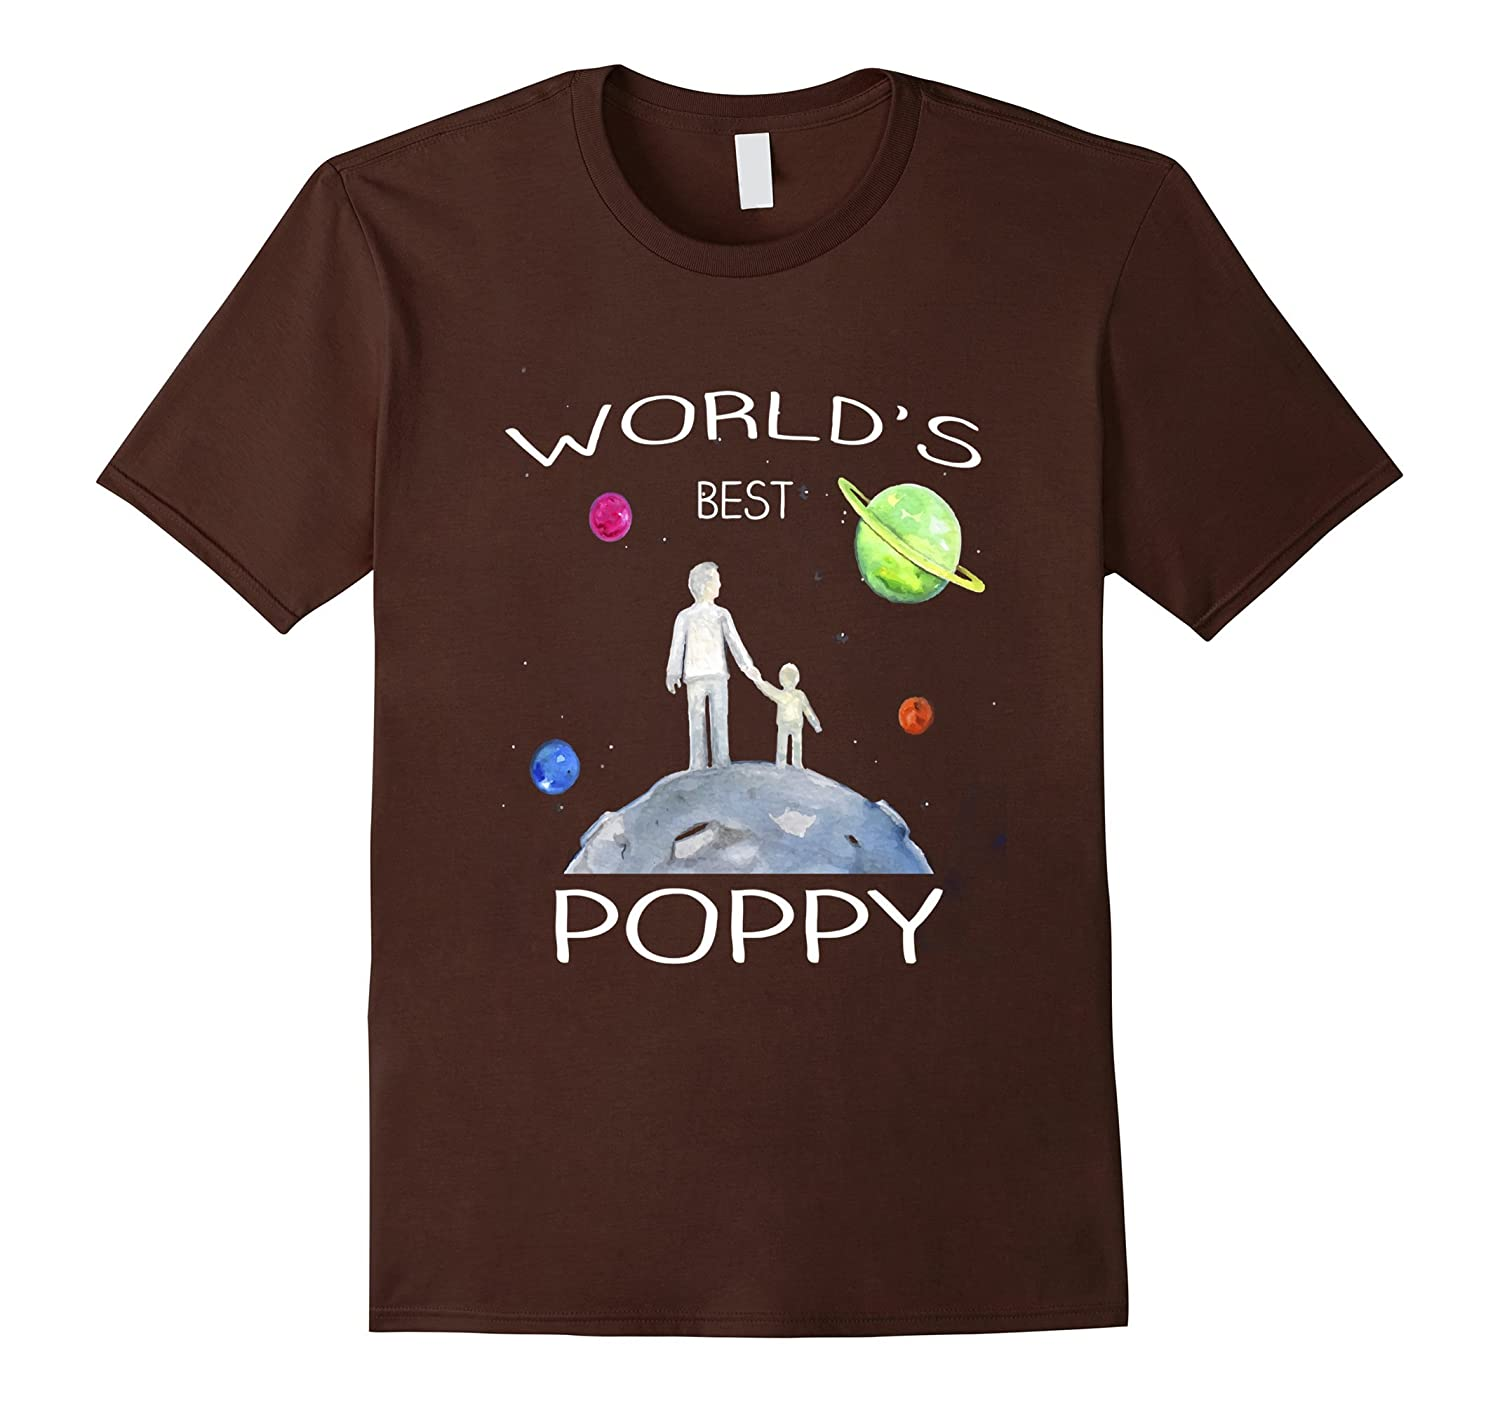 WORLD'S BEST POPPY SHIRT, Cute gift for POPPY, Love POPPY-TH